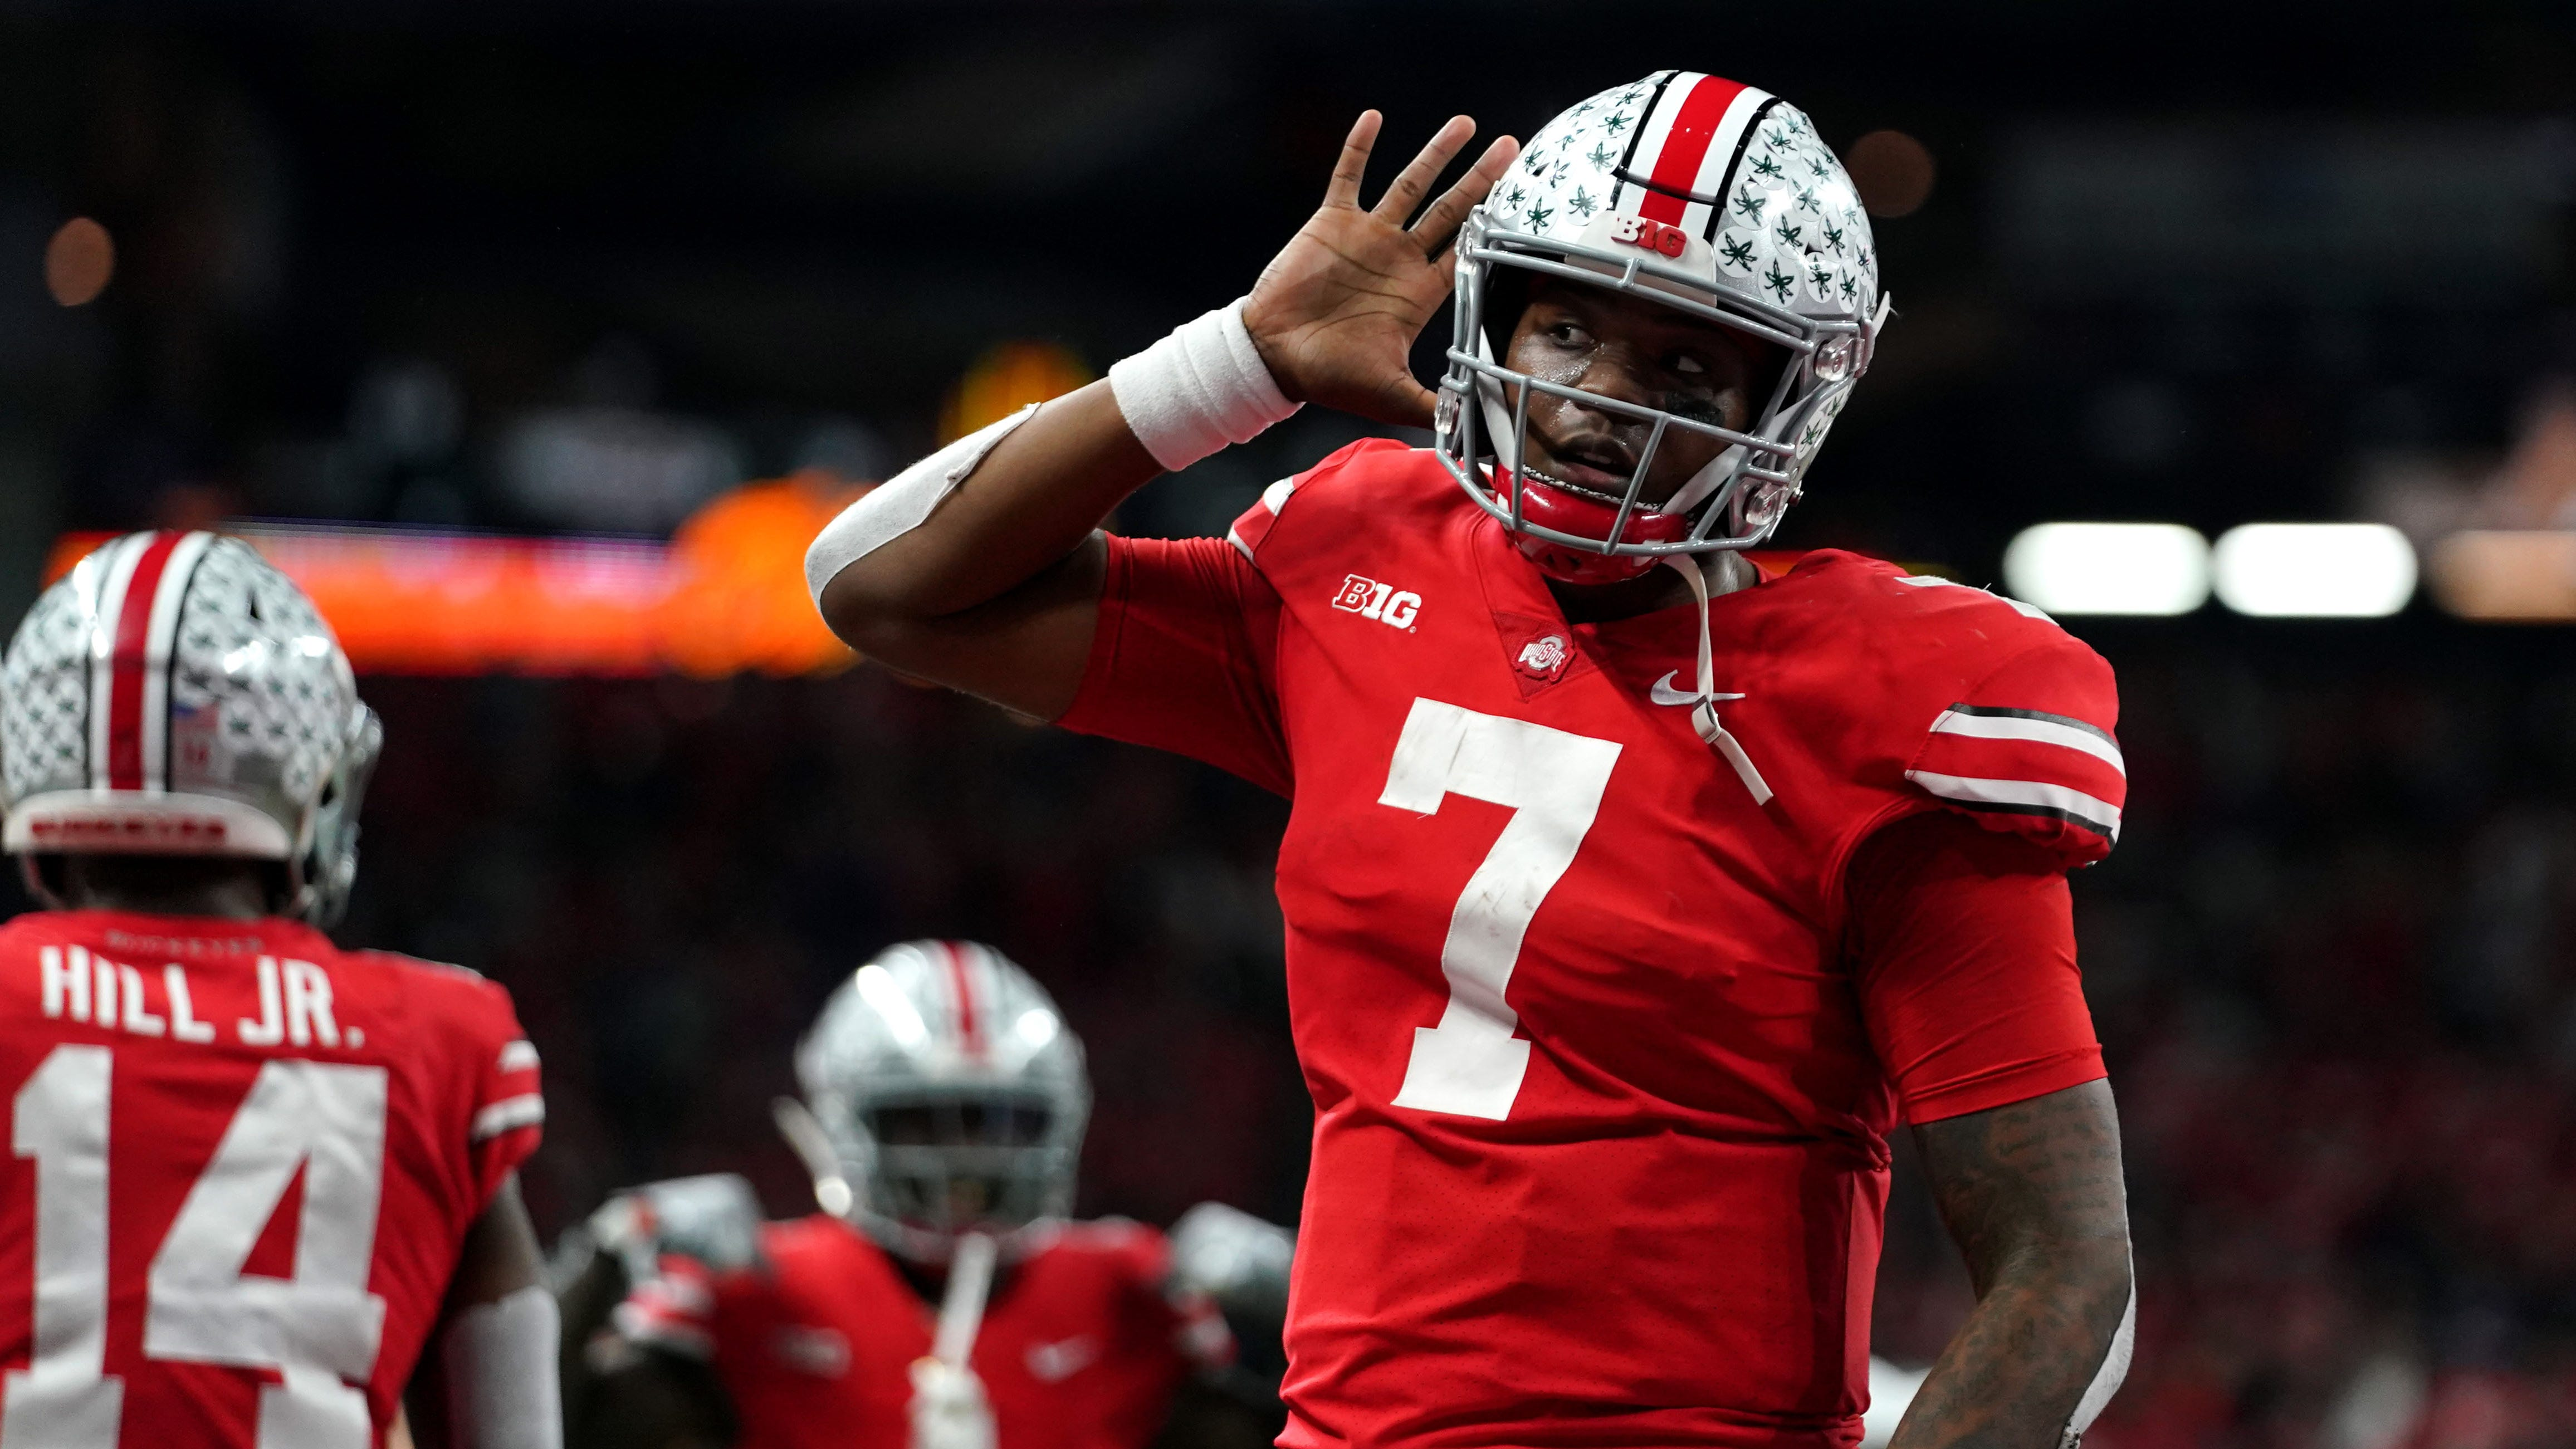 Ohio State Buckeyes quarterback Dwayne Haskins (7) celebrates with teammates after throwing a touchdown pass against the Northwestern Wildcats in the first half in the Big Ten conference championship game at Lucas Oil Stadium.